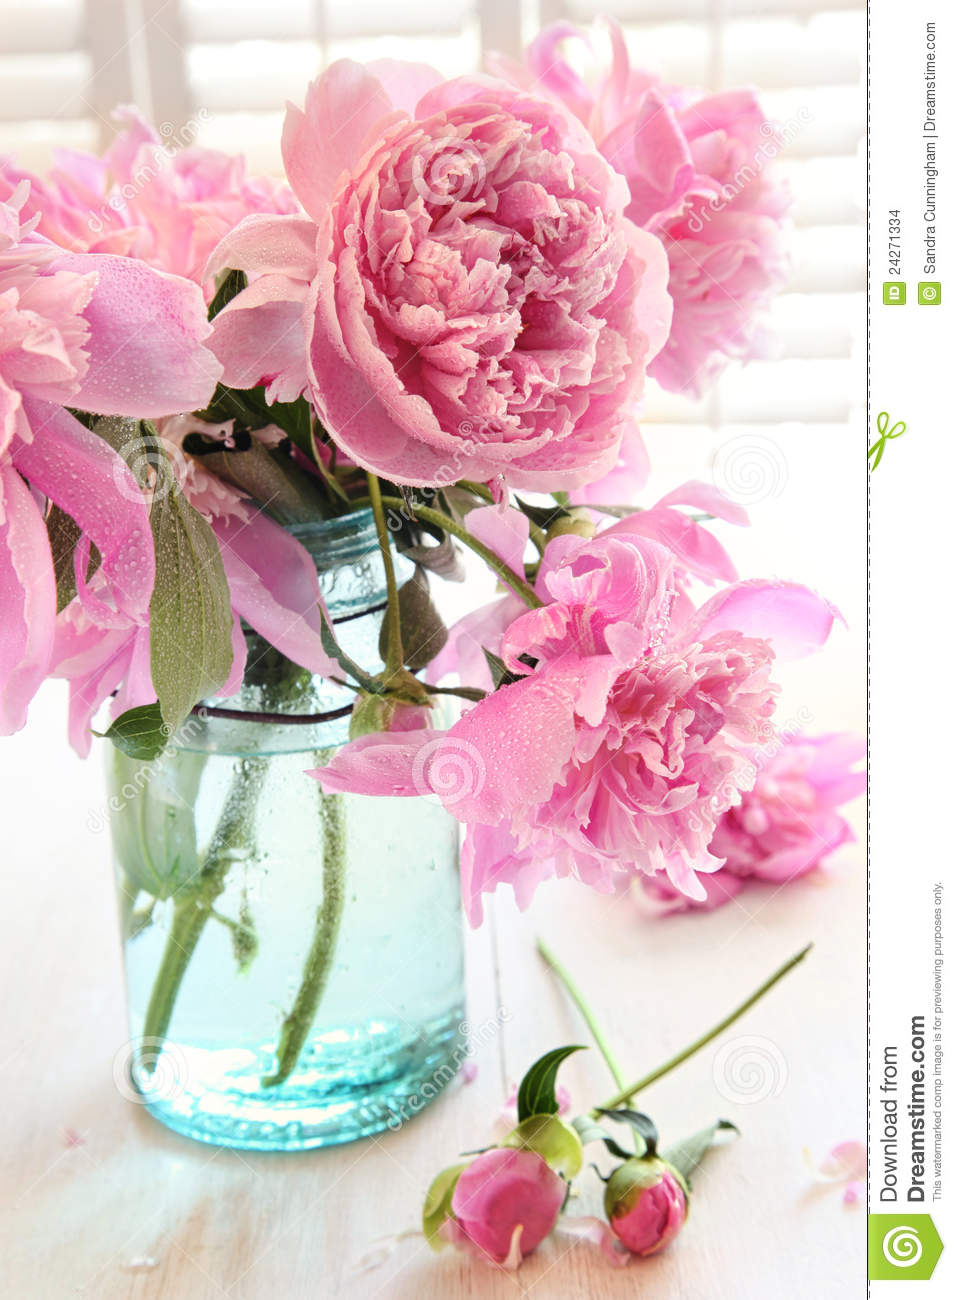 The Pink Peonies Pink Peonies In Glass Jar Stock Images  Image 24271334